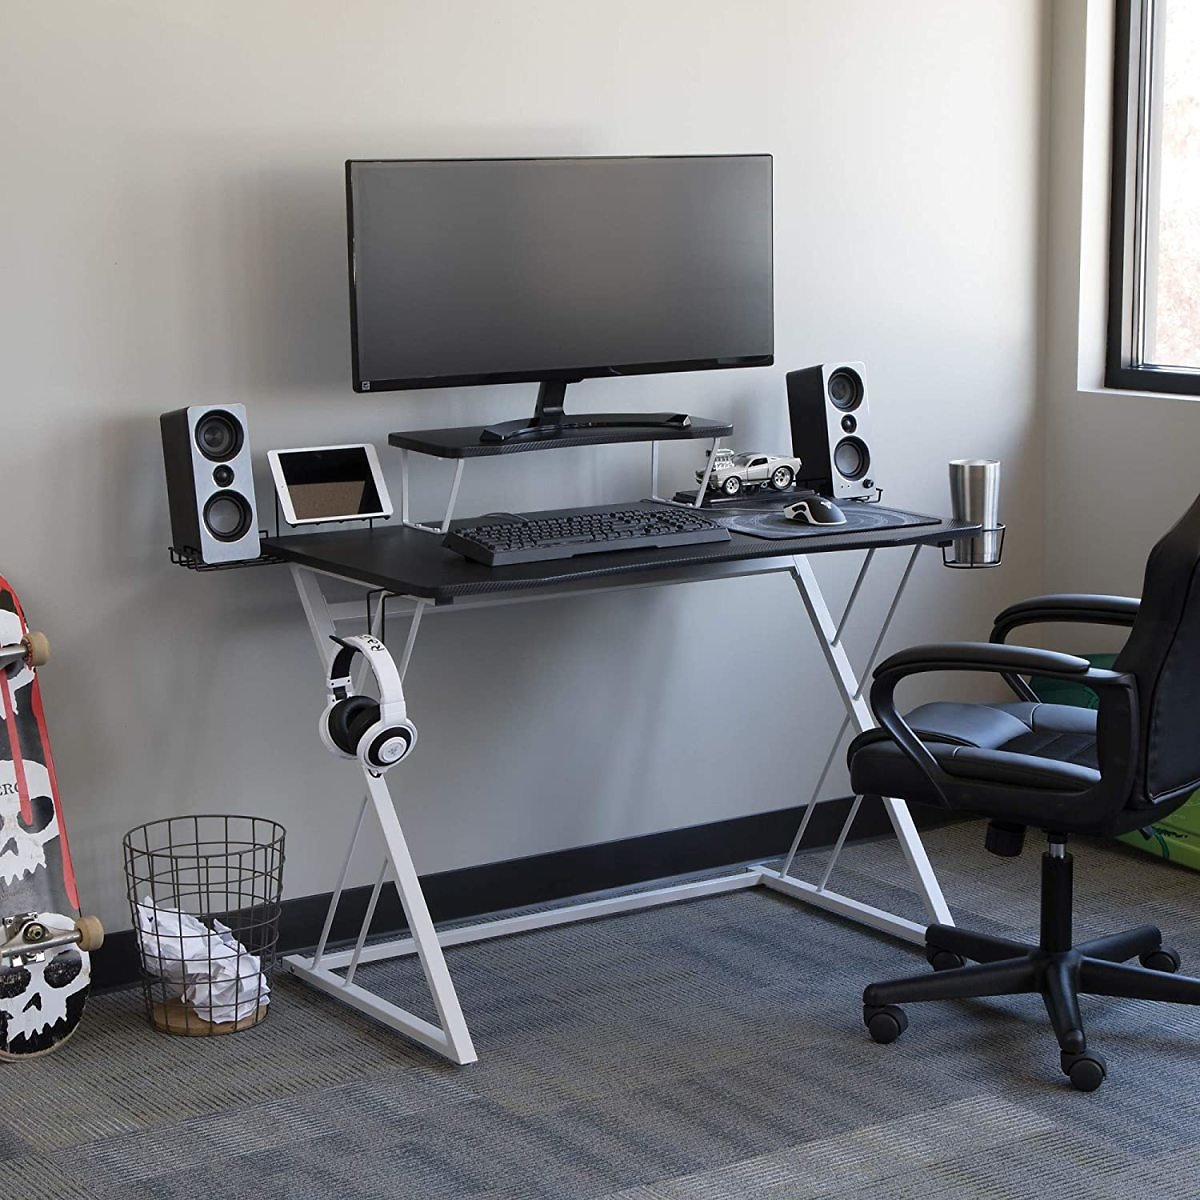 Up to 43% Off Home Office Furniture & More + F/S